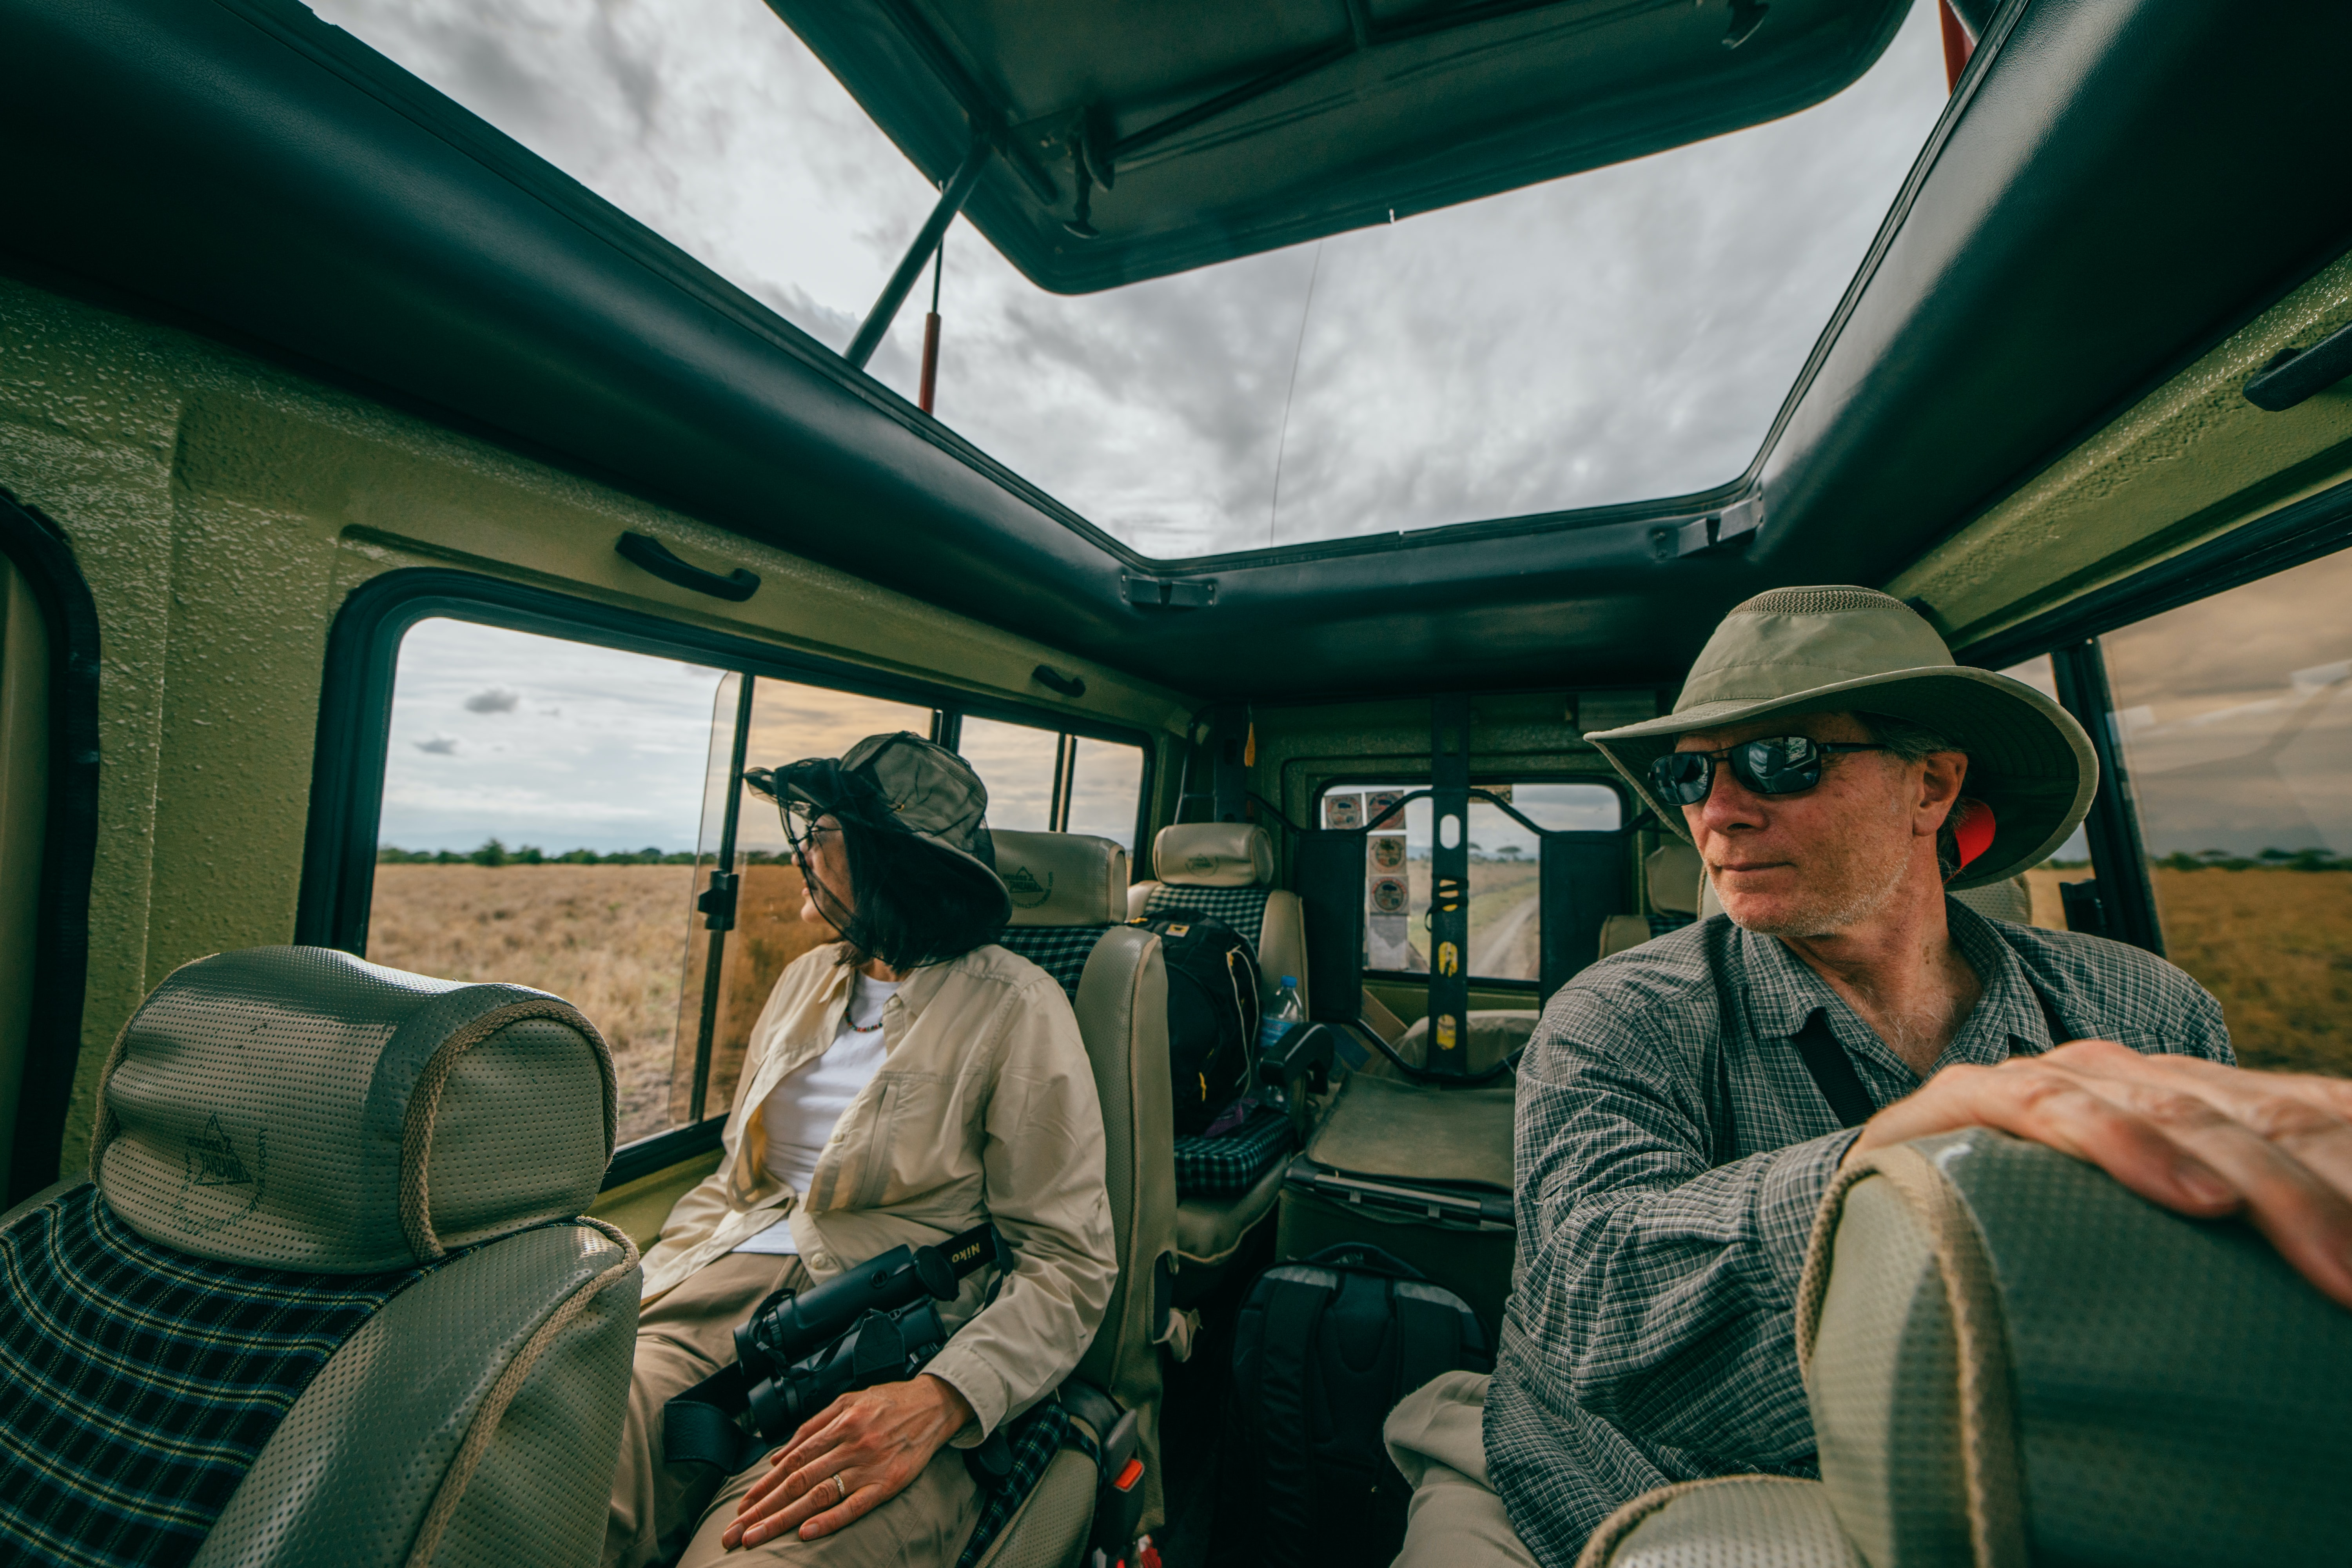 Tourists take a safari ride in a truck in Tanzania